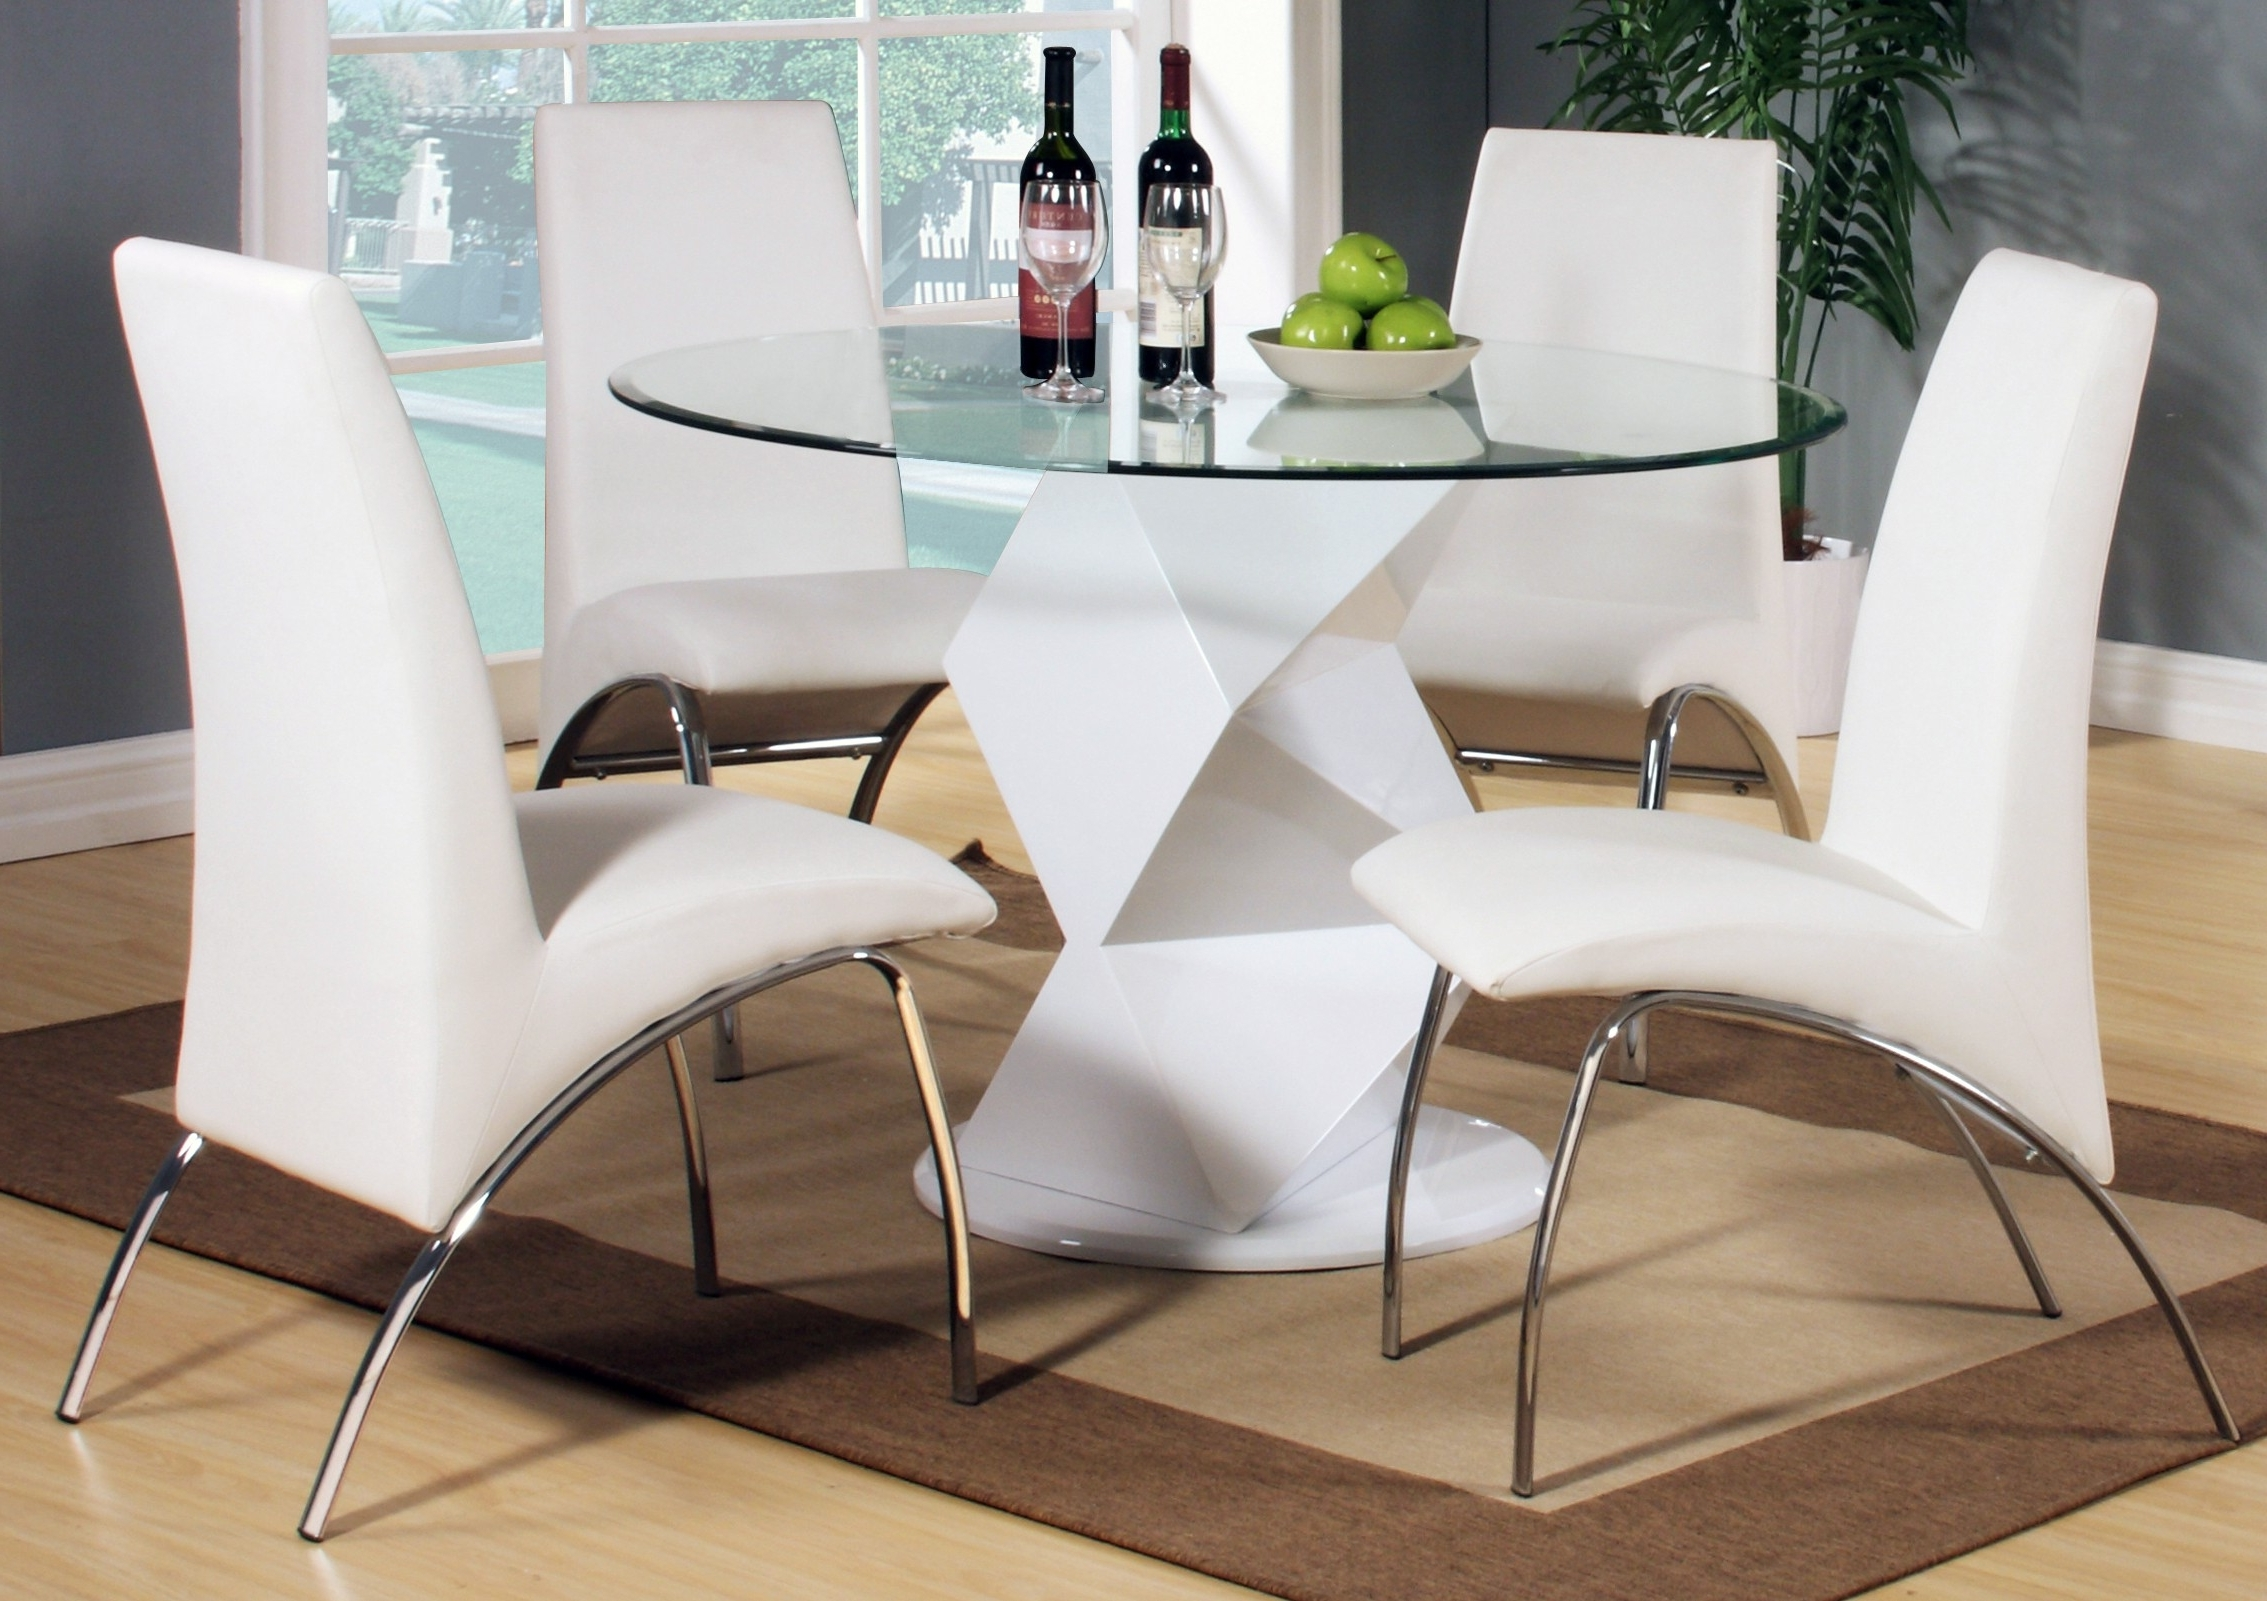 Finn White High Gloss Round Dining Table Set 4 Seater With 2017 White Gloss Dining Sets (View 6 of 25)